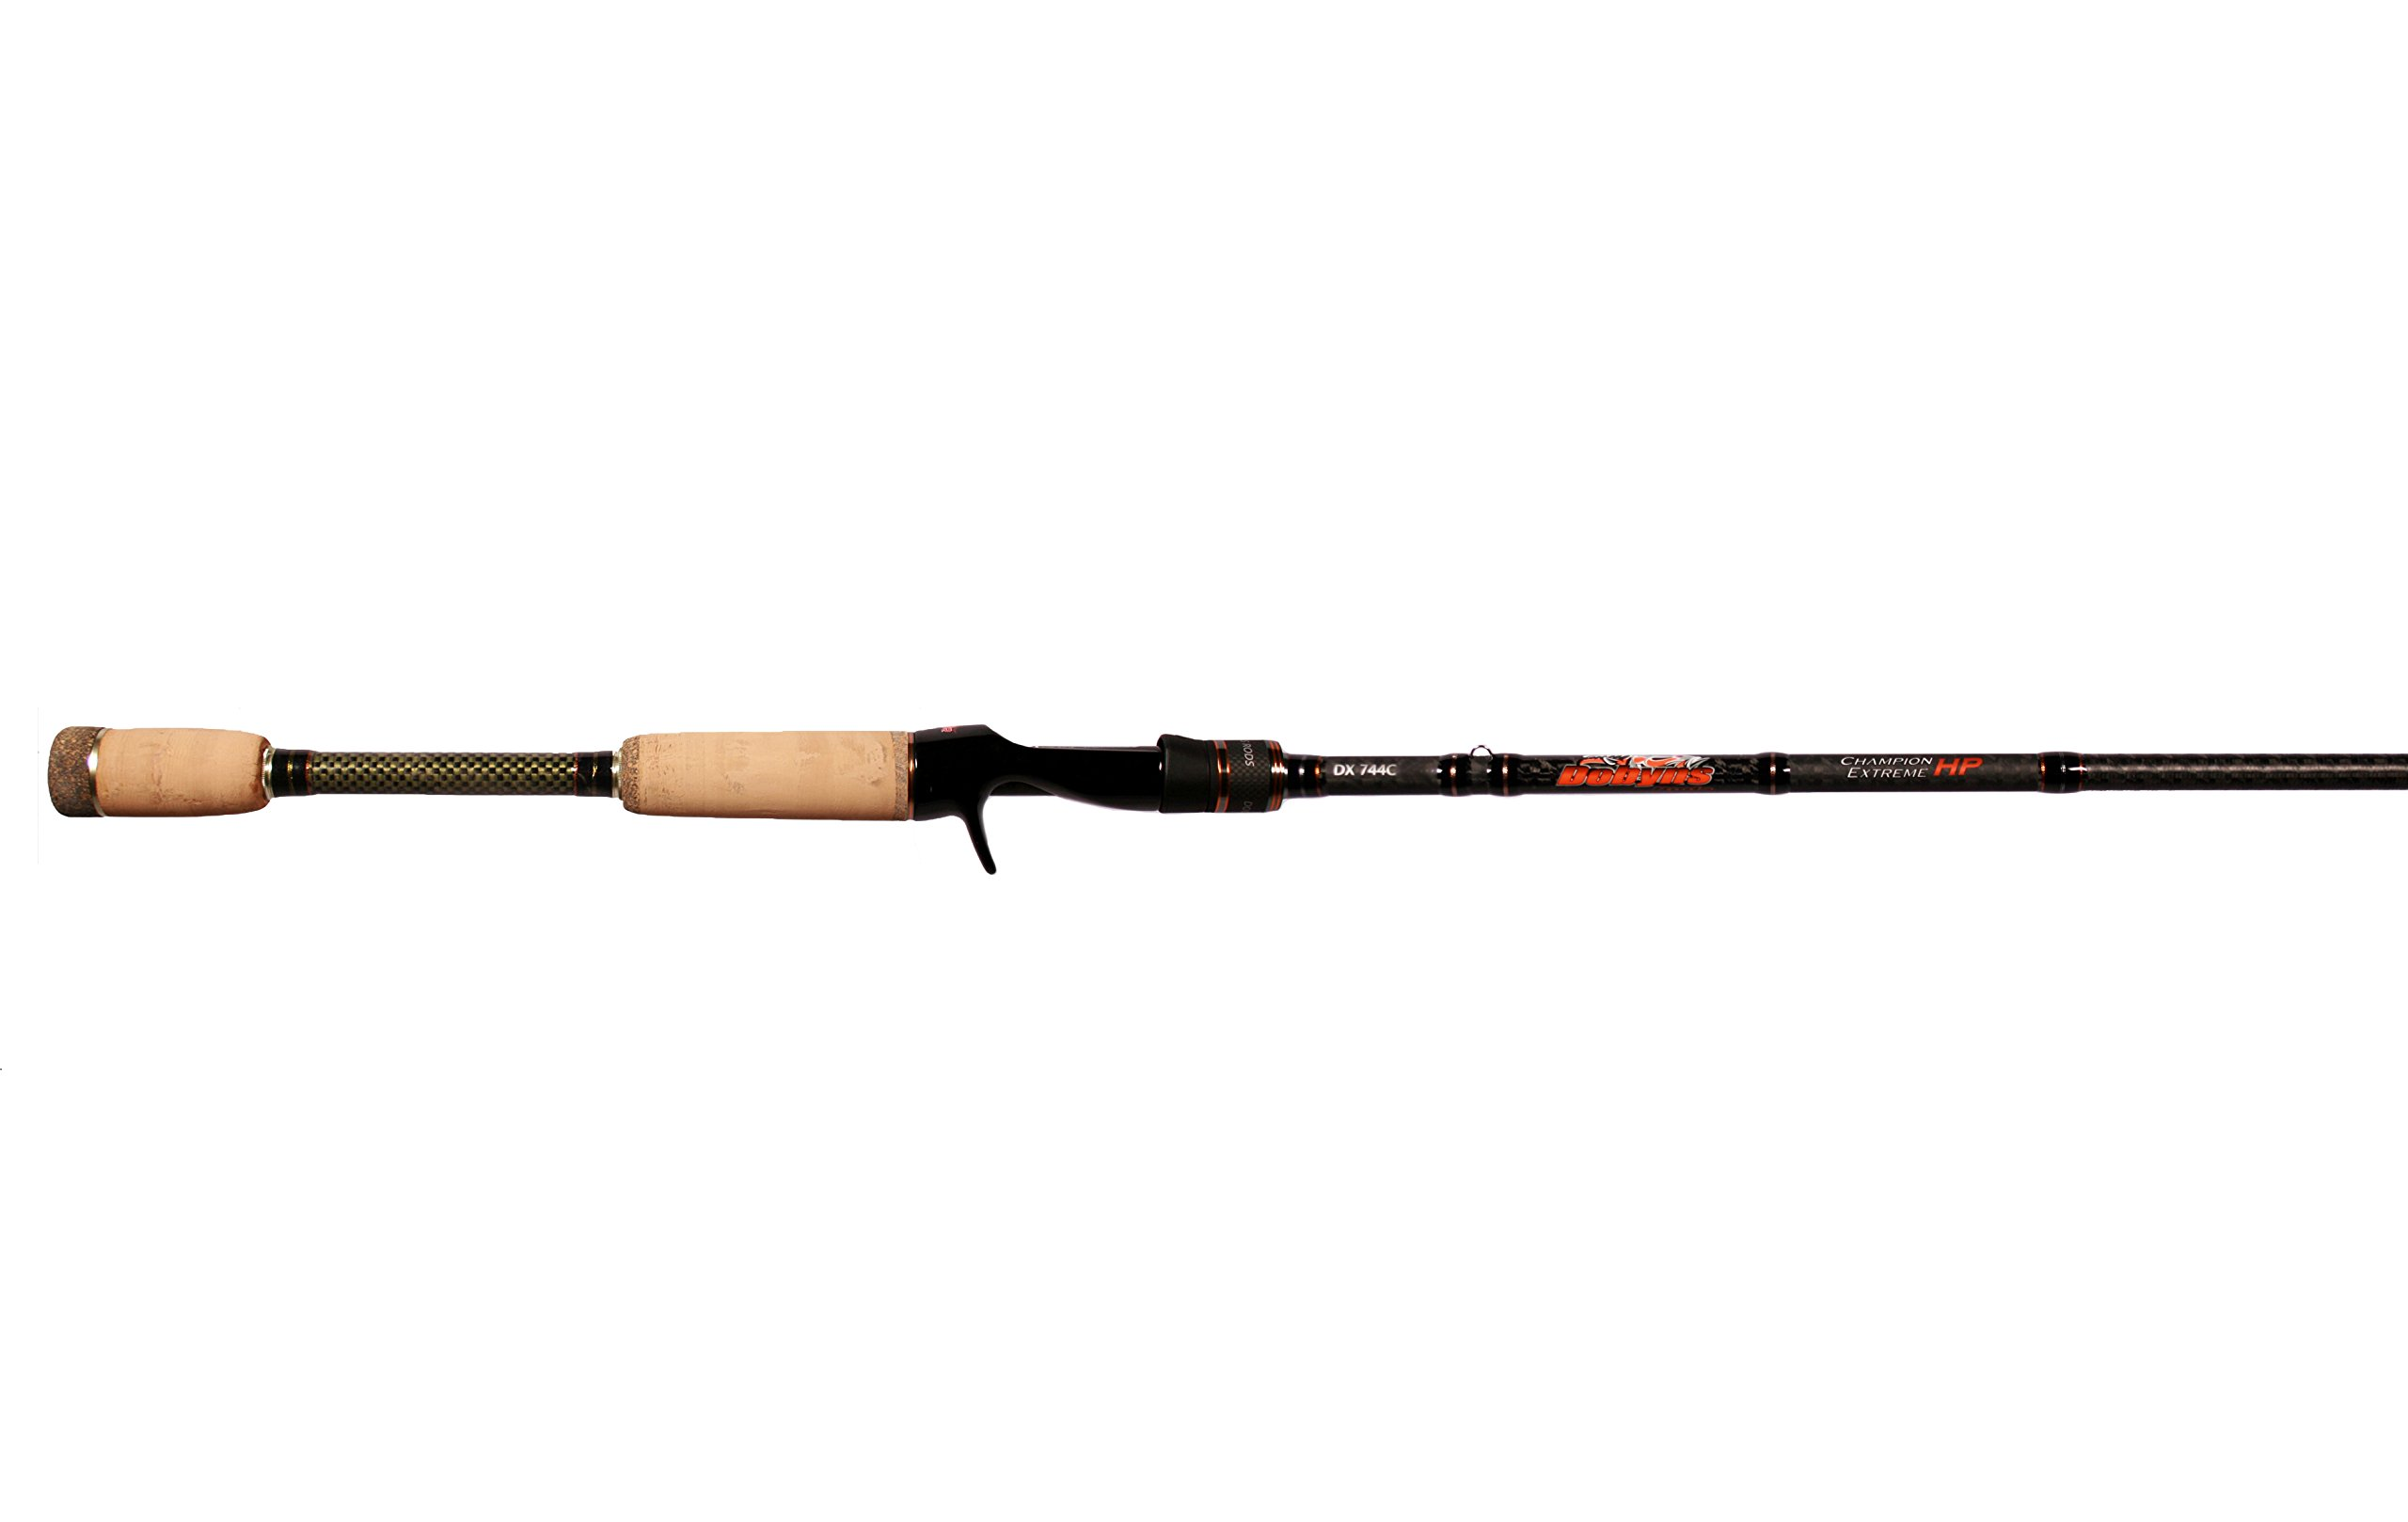 Dobyns Rods DX 703C Champion Extreme Series Heavy Fast Casting Rod, 7'0''/Medium, Black/Orange by Dobyns Rods